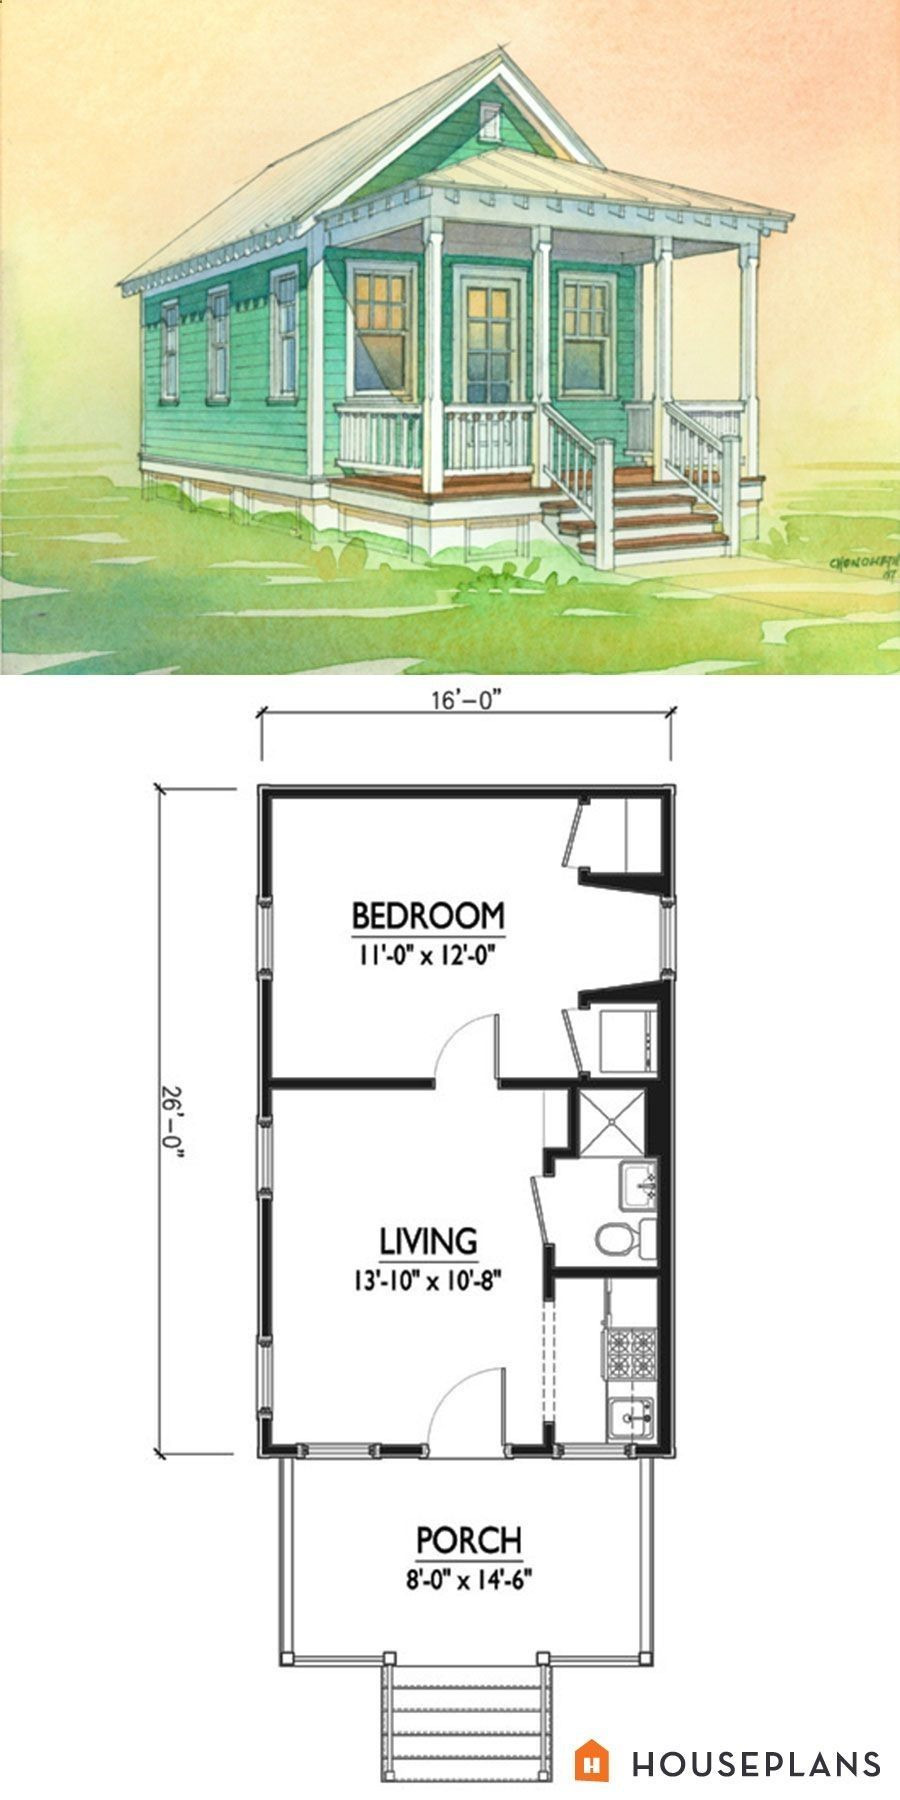 Very Small Cottage House Plans Elegant Charming Tiny Cottage Plan by Marianne Cusato 400sft 1